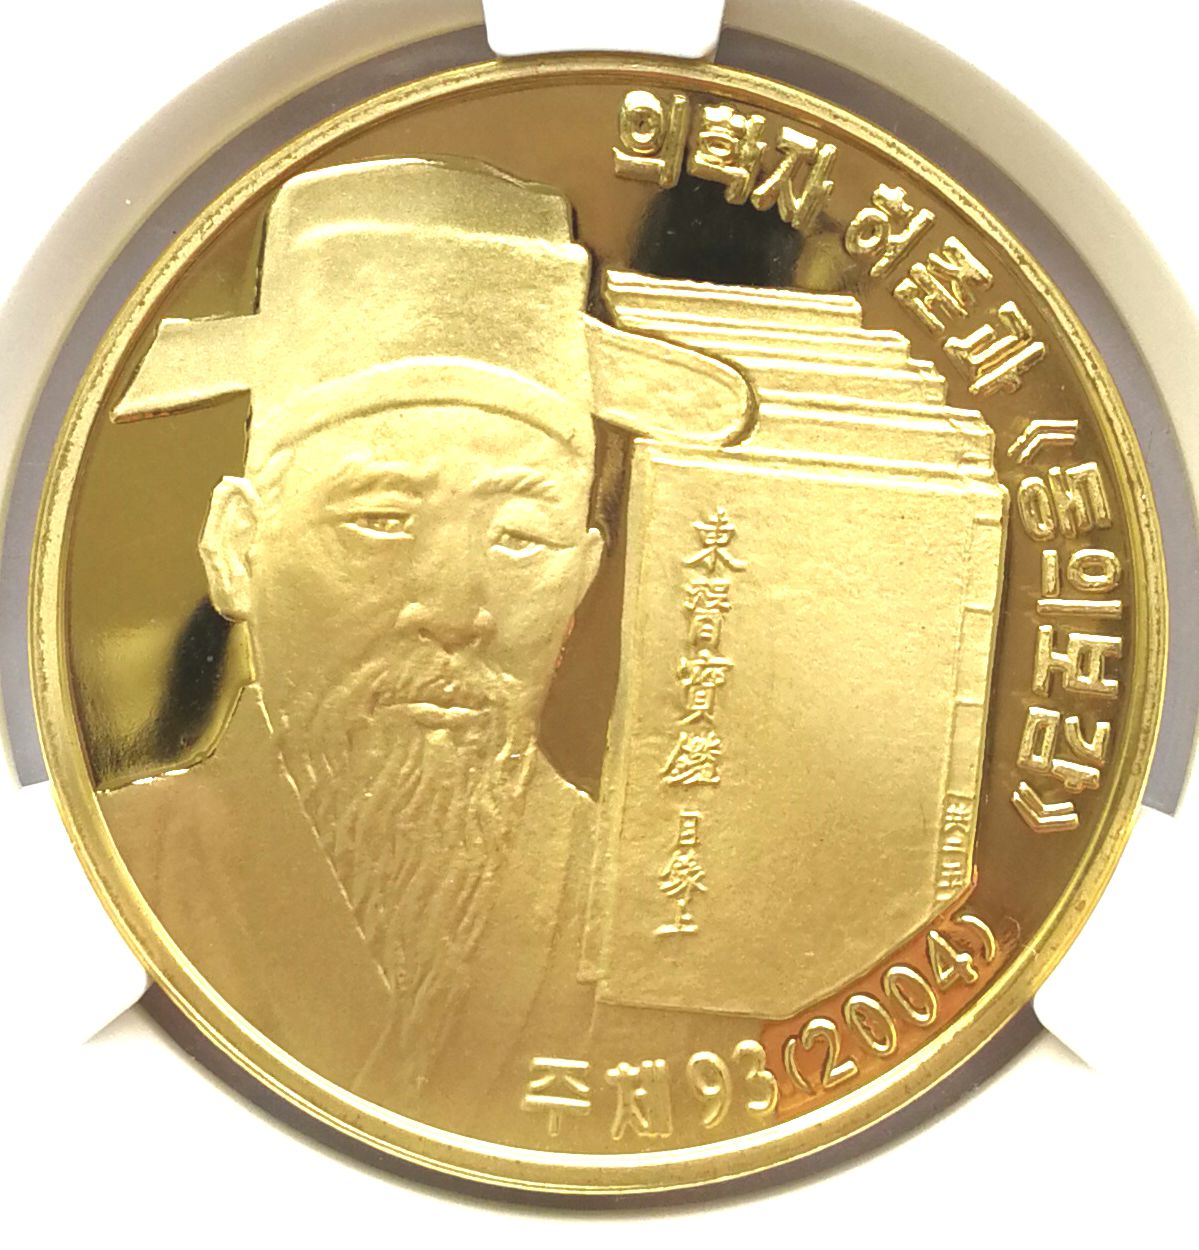 "L3376, Korea ""Dongyi Bogam, Map"" Proof Large Bronze Coin 2004, ACG Grade"